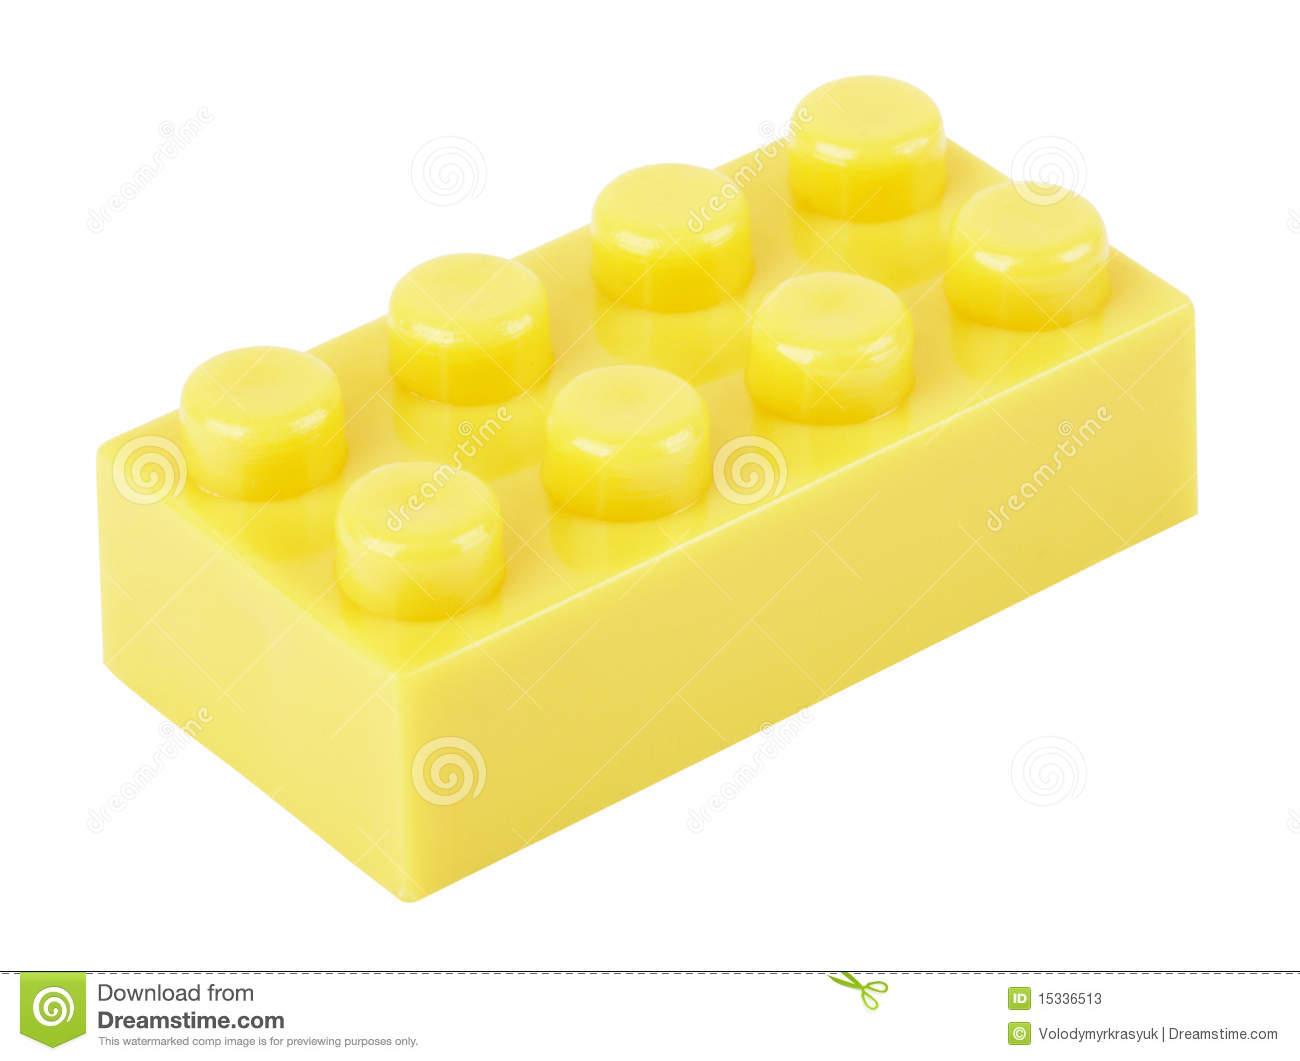 One building block lego stock photos image